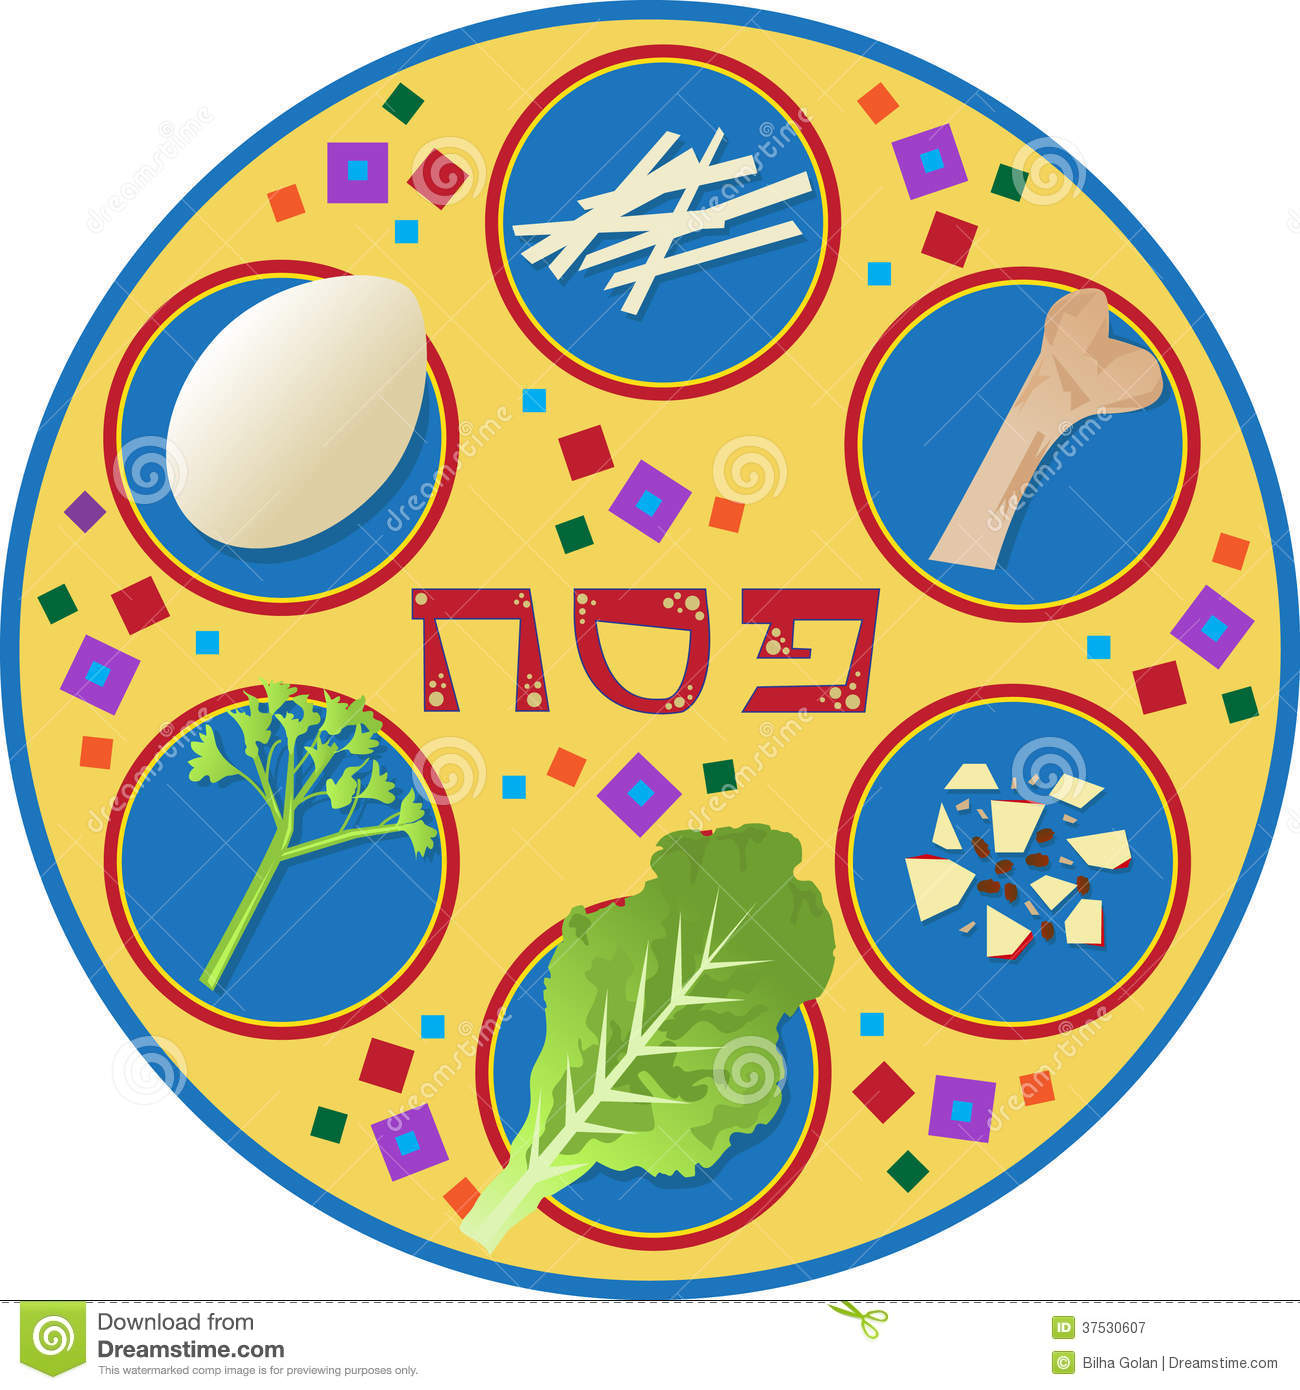 Passover clipart-Passover clipart-7